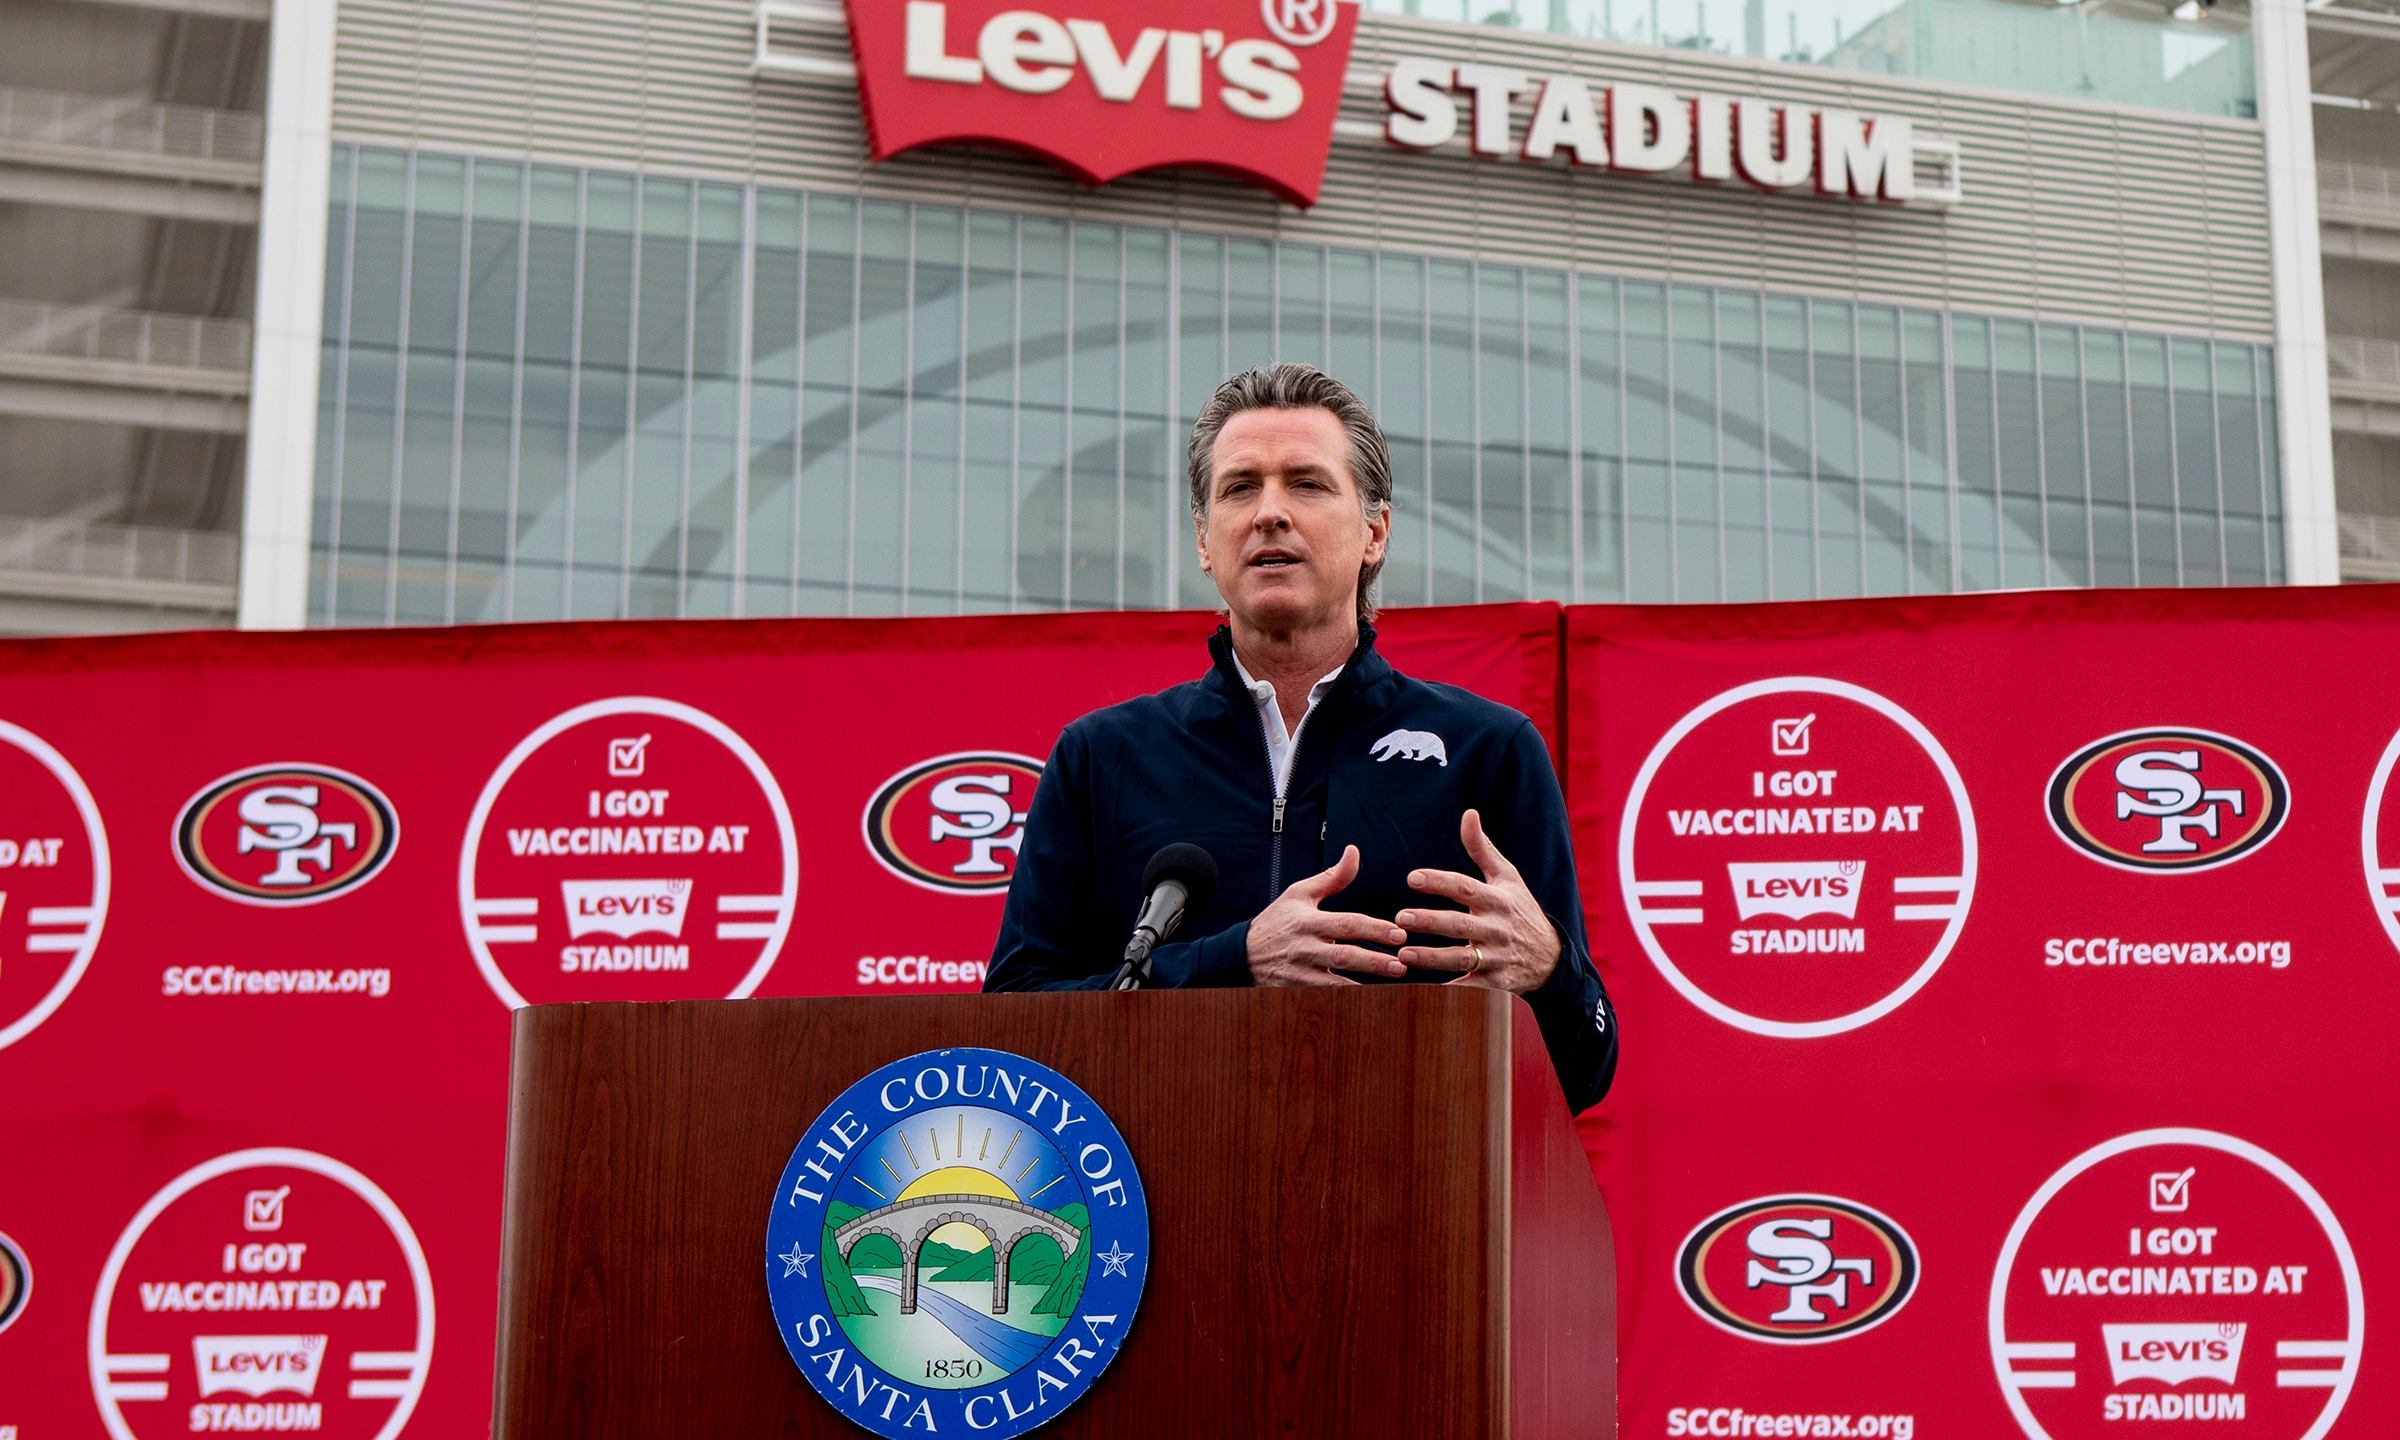 In this Feb. 9, 2021, file photo, California Gov. Gavin Newsom speaks at a press conference outside of Levi's Stadium, in Santa Clara, Calif., before the opening of the largest mass coronavirus vaccination site in the state. (Karl Mondon/Bay Area News Group via AP, File)